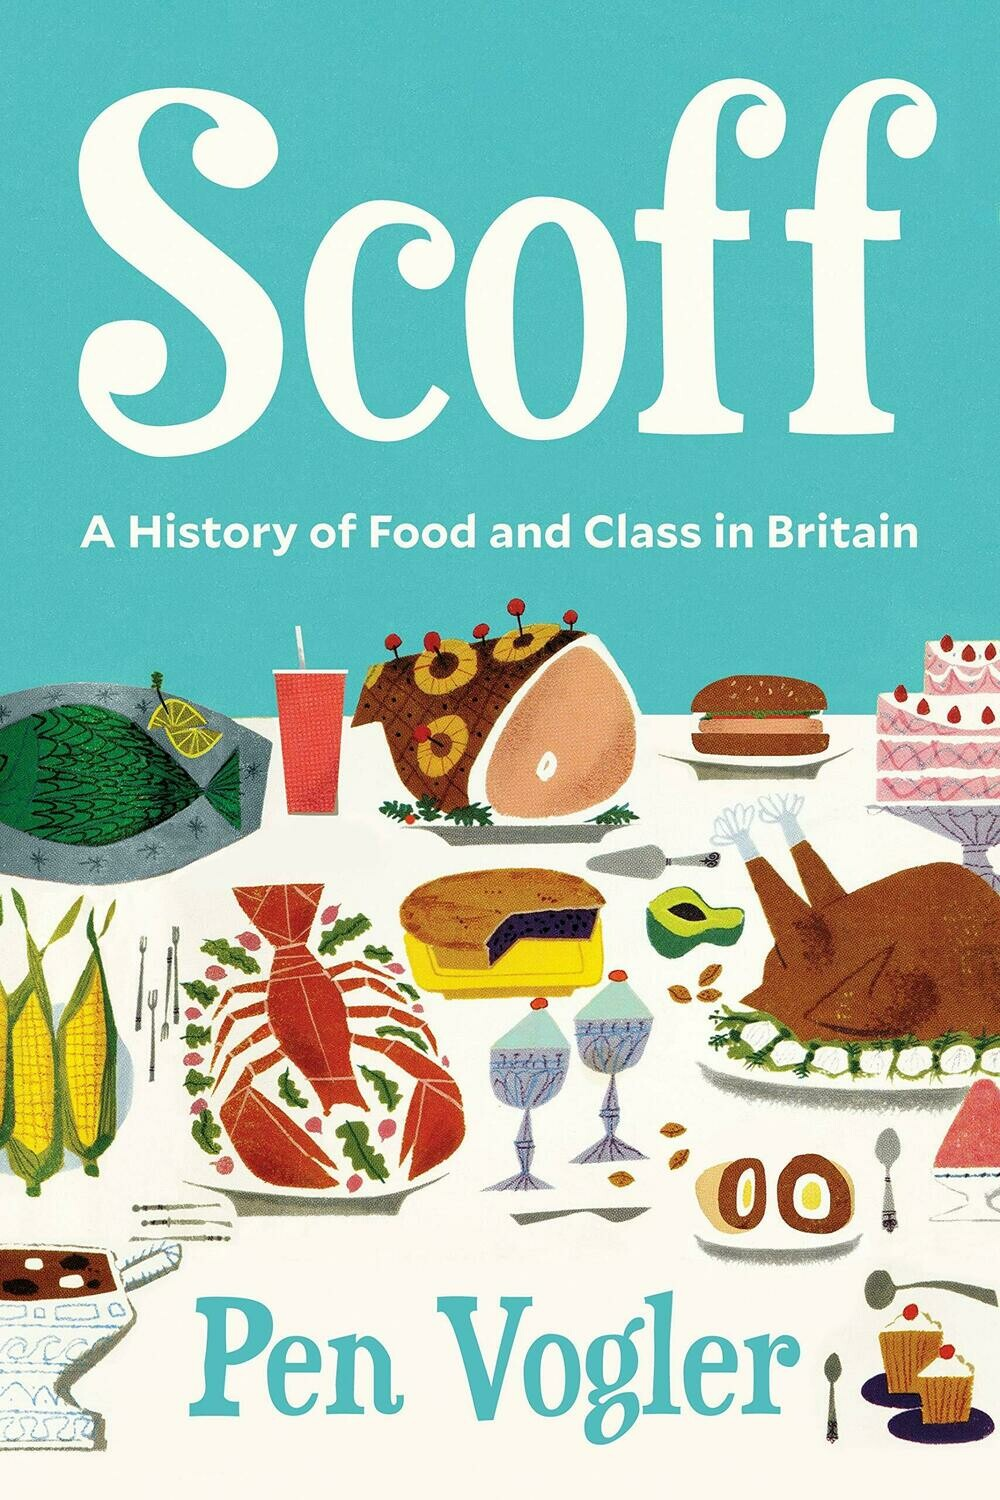 Scoff: A History of Food and Class in Britain